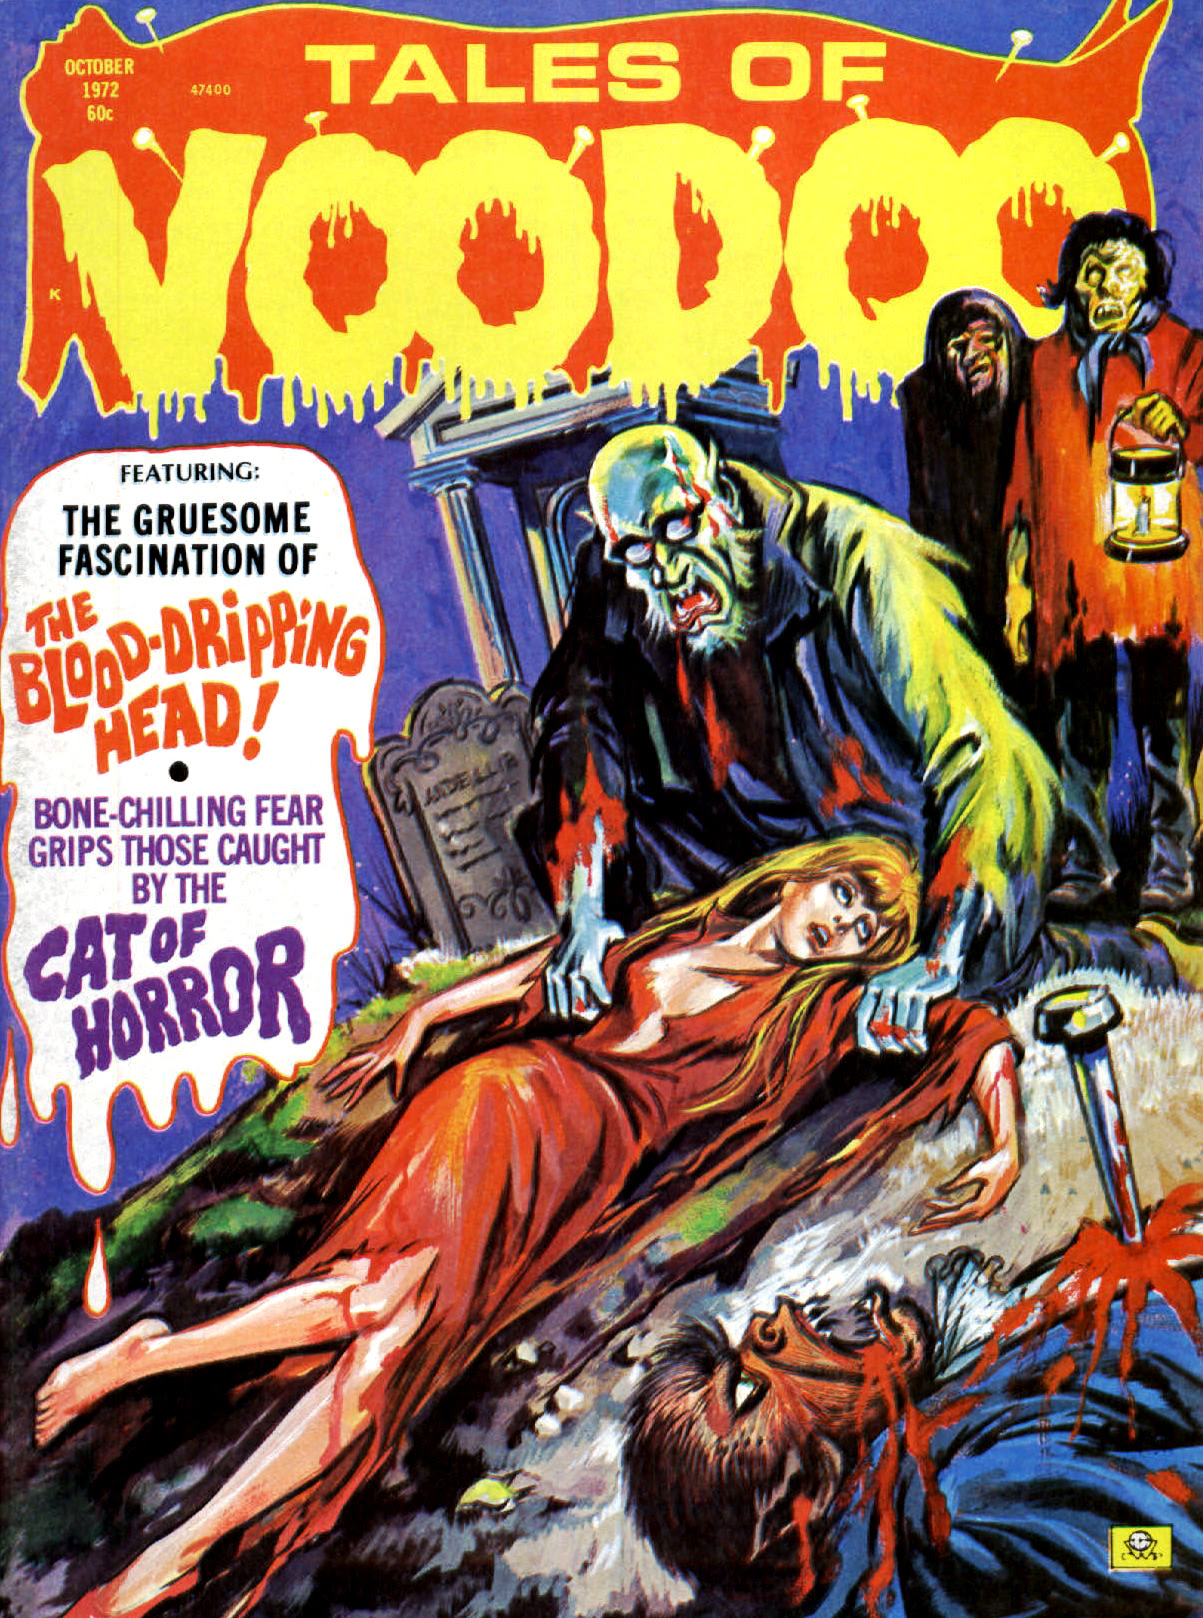 Tales of Voodoo Vol. 5 #6 (Eerie Publications 1972)